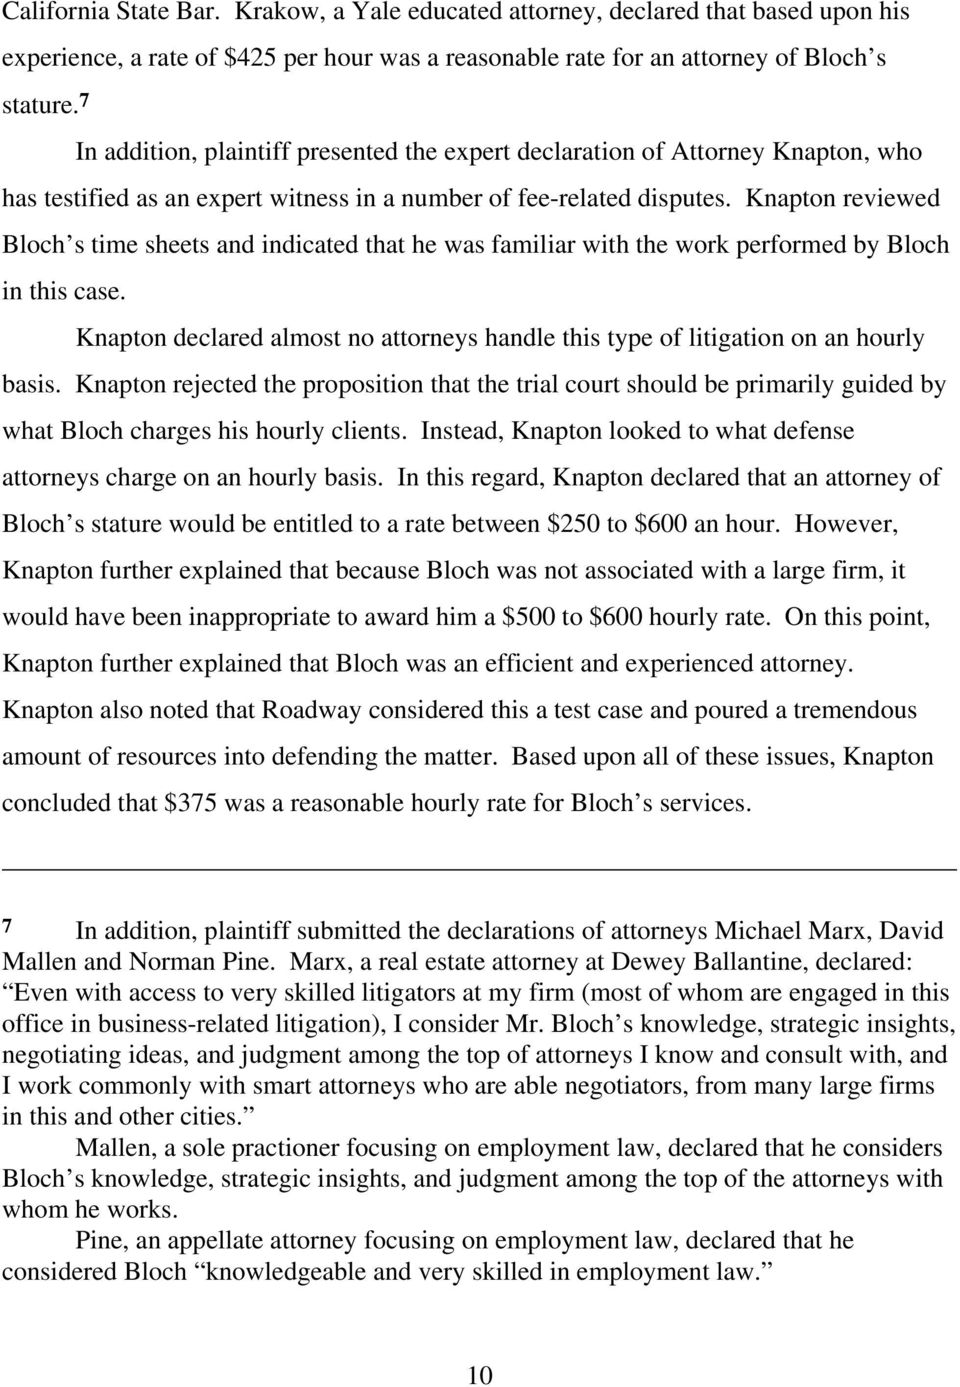 Knapton reviewed Bloch s time sheets and indicated that he was familiar with the work performed by Bloch in this case.